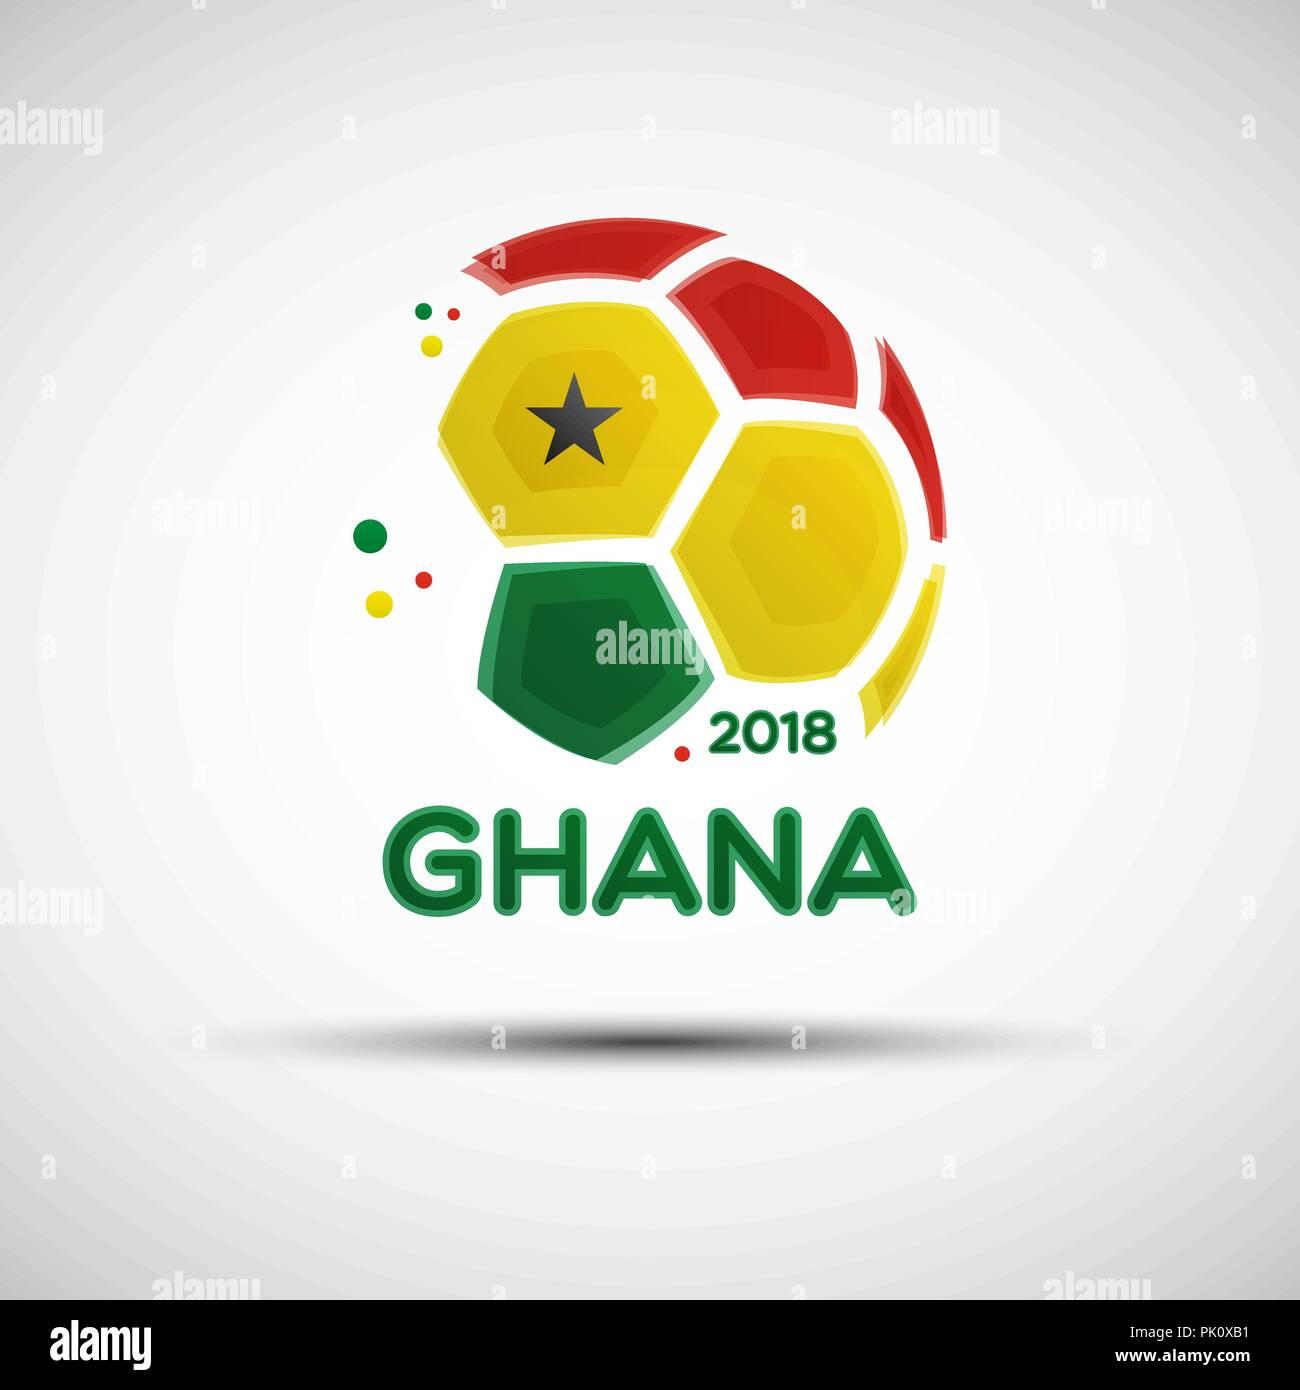 Football championship banner. Flag of Ghana. Vector illustration of abstract soccer ball with Ghanaian national flag colors for your design - Stock Vector